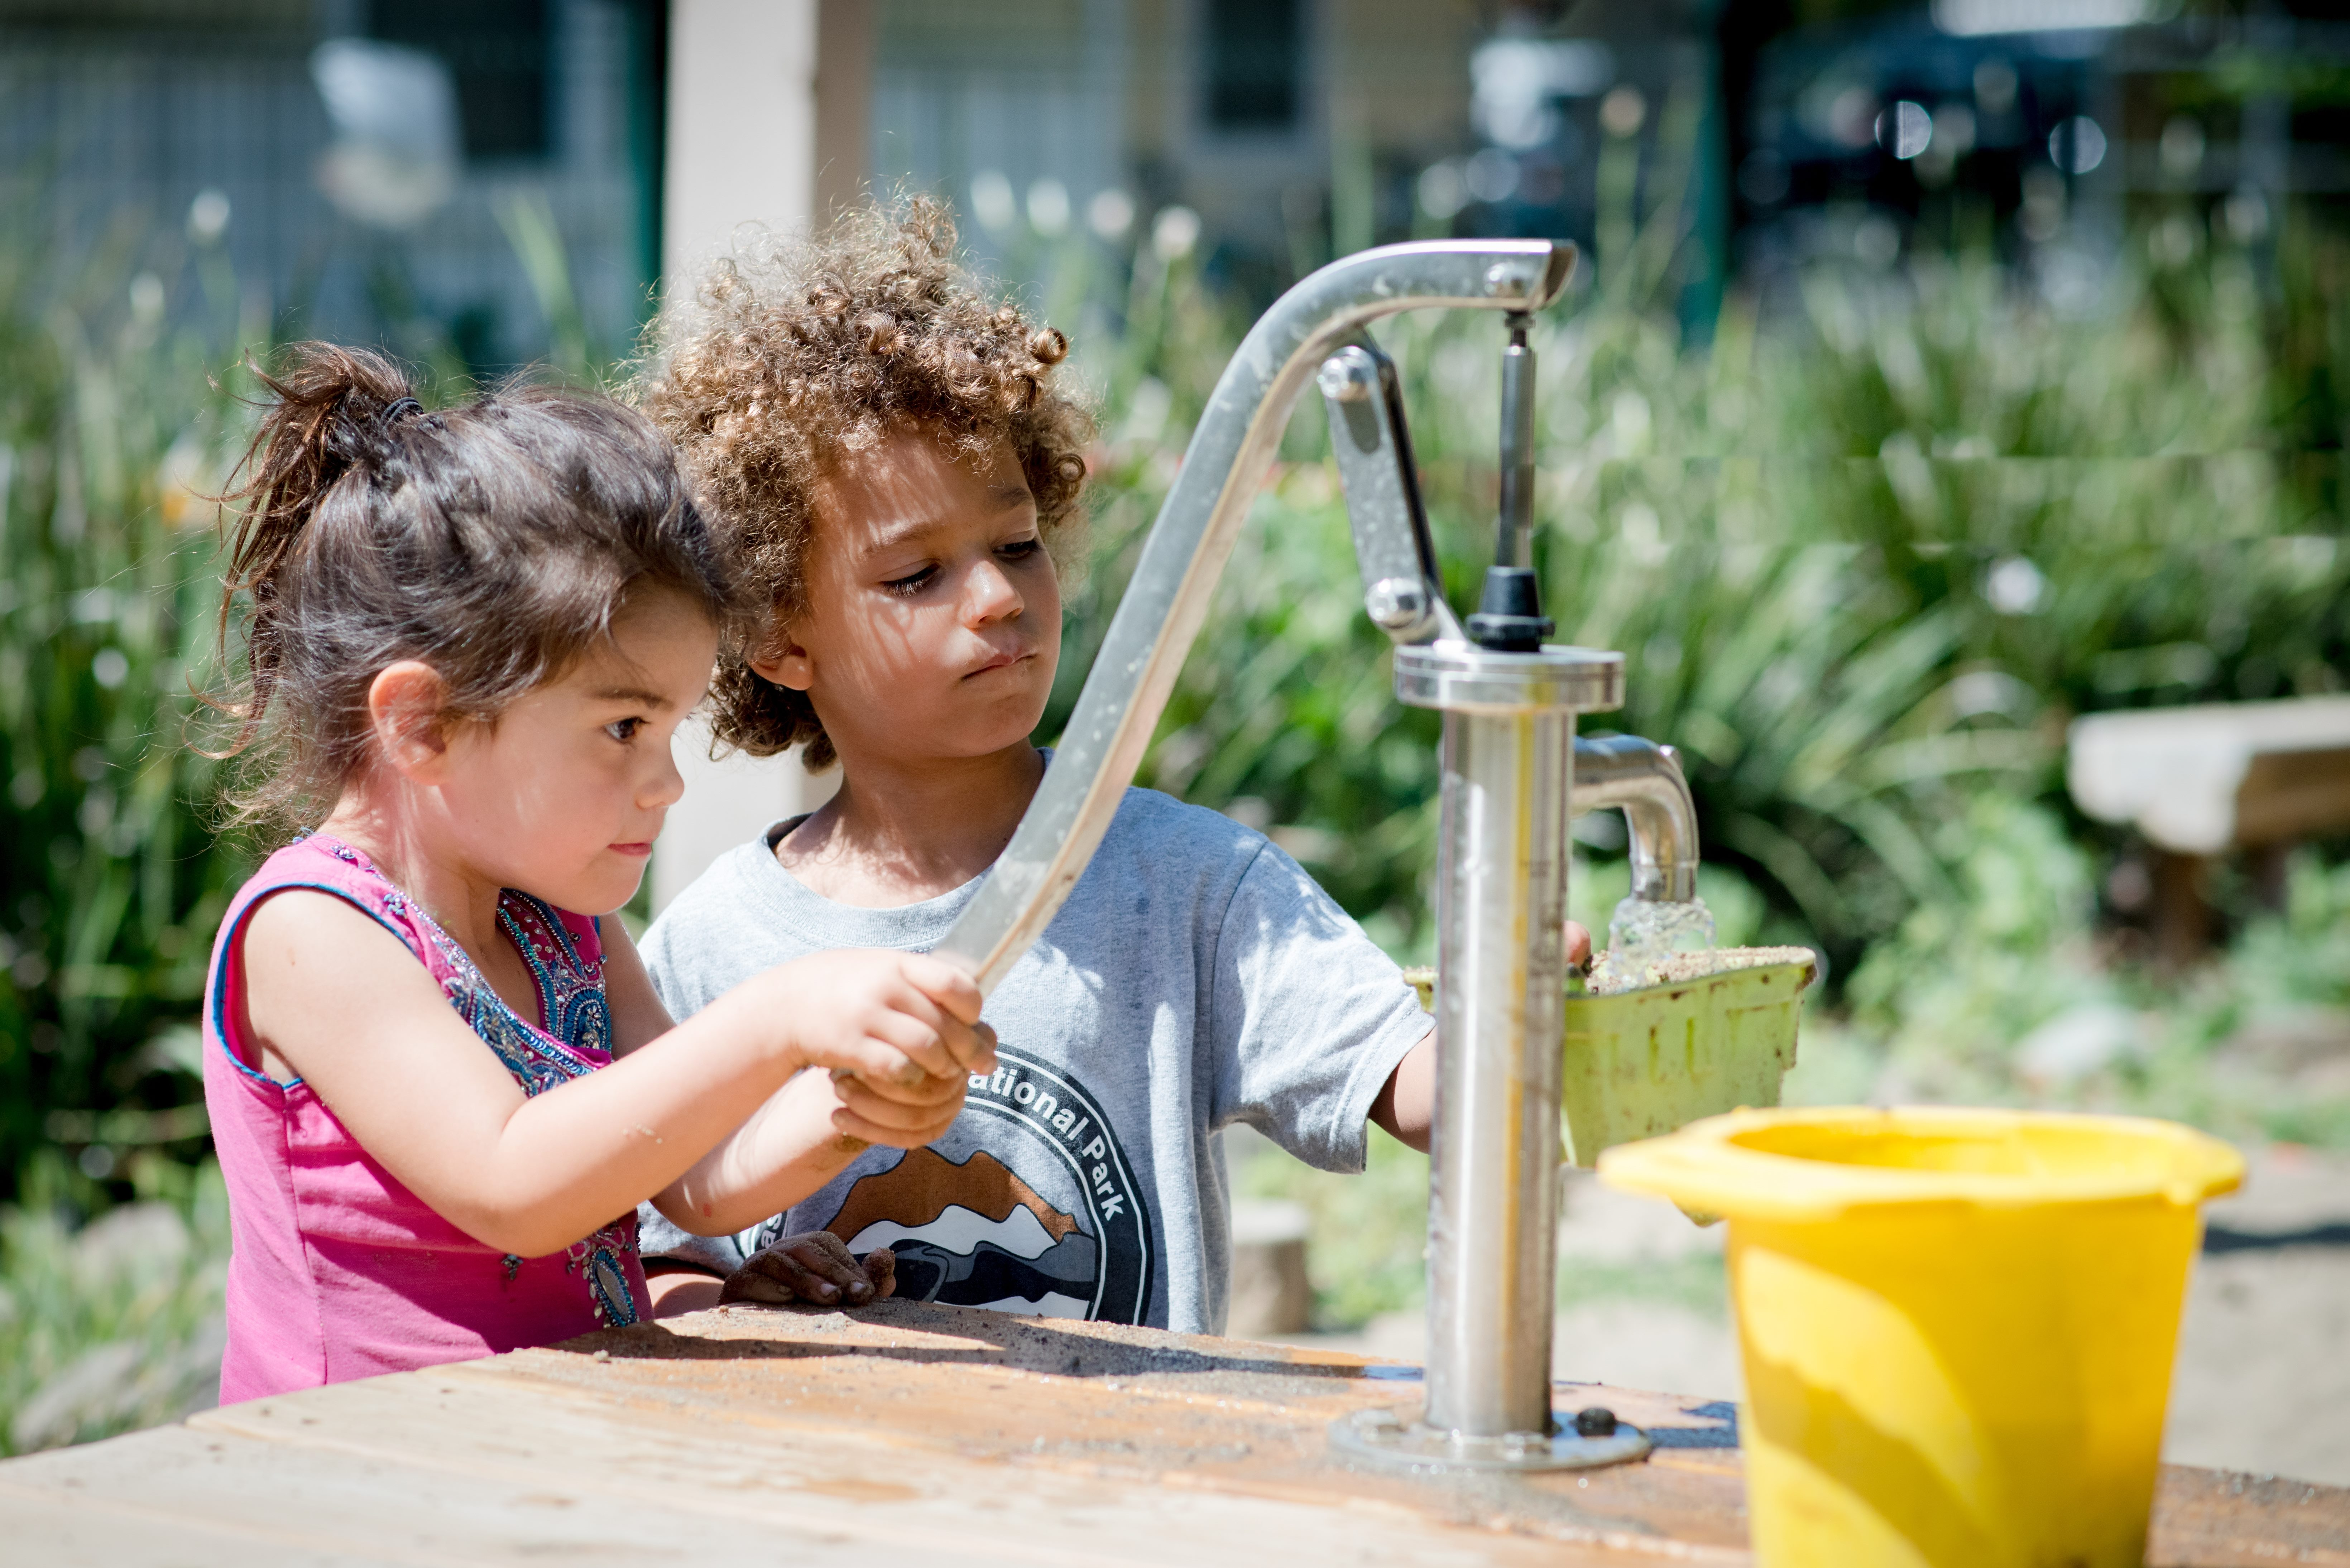 preschoolers pump water together